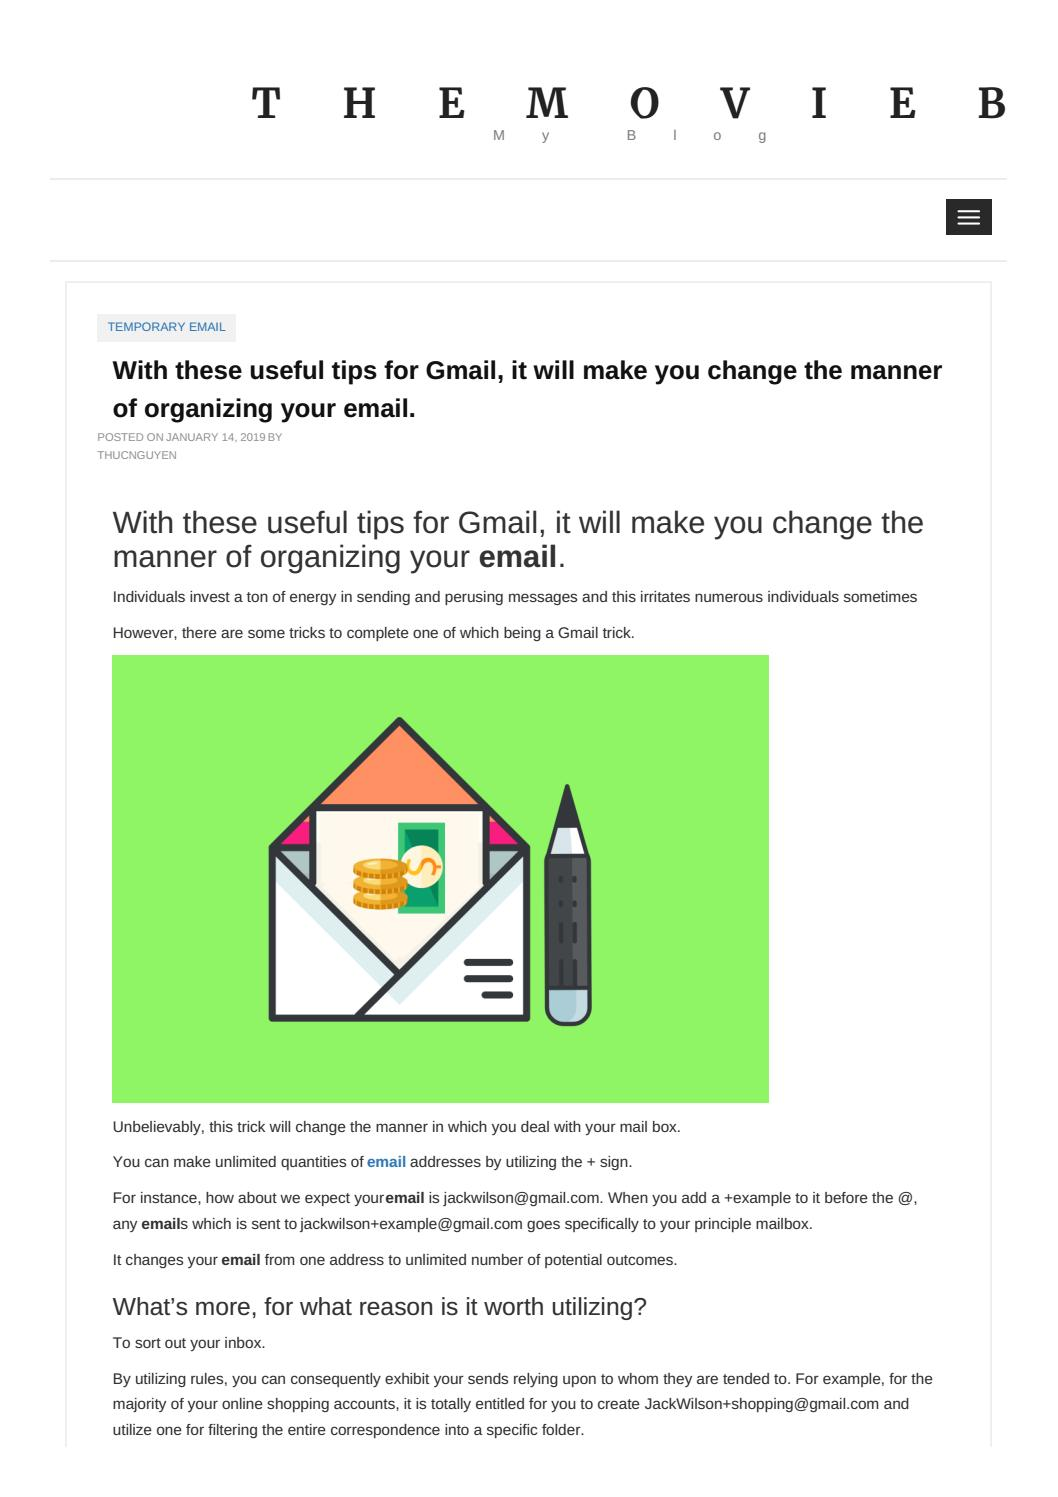 With these useful tips for Gmail, it will make you change